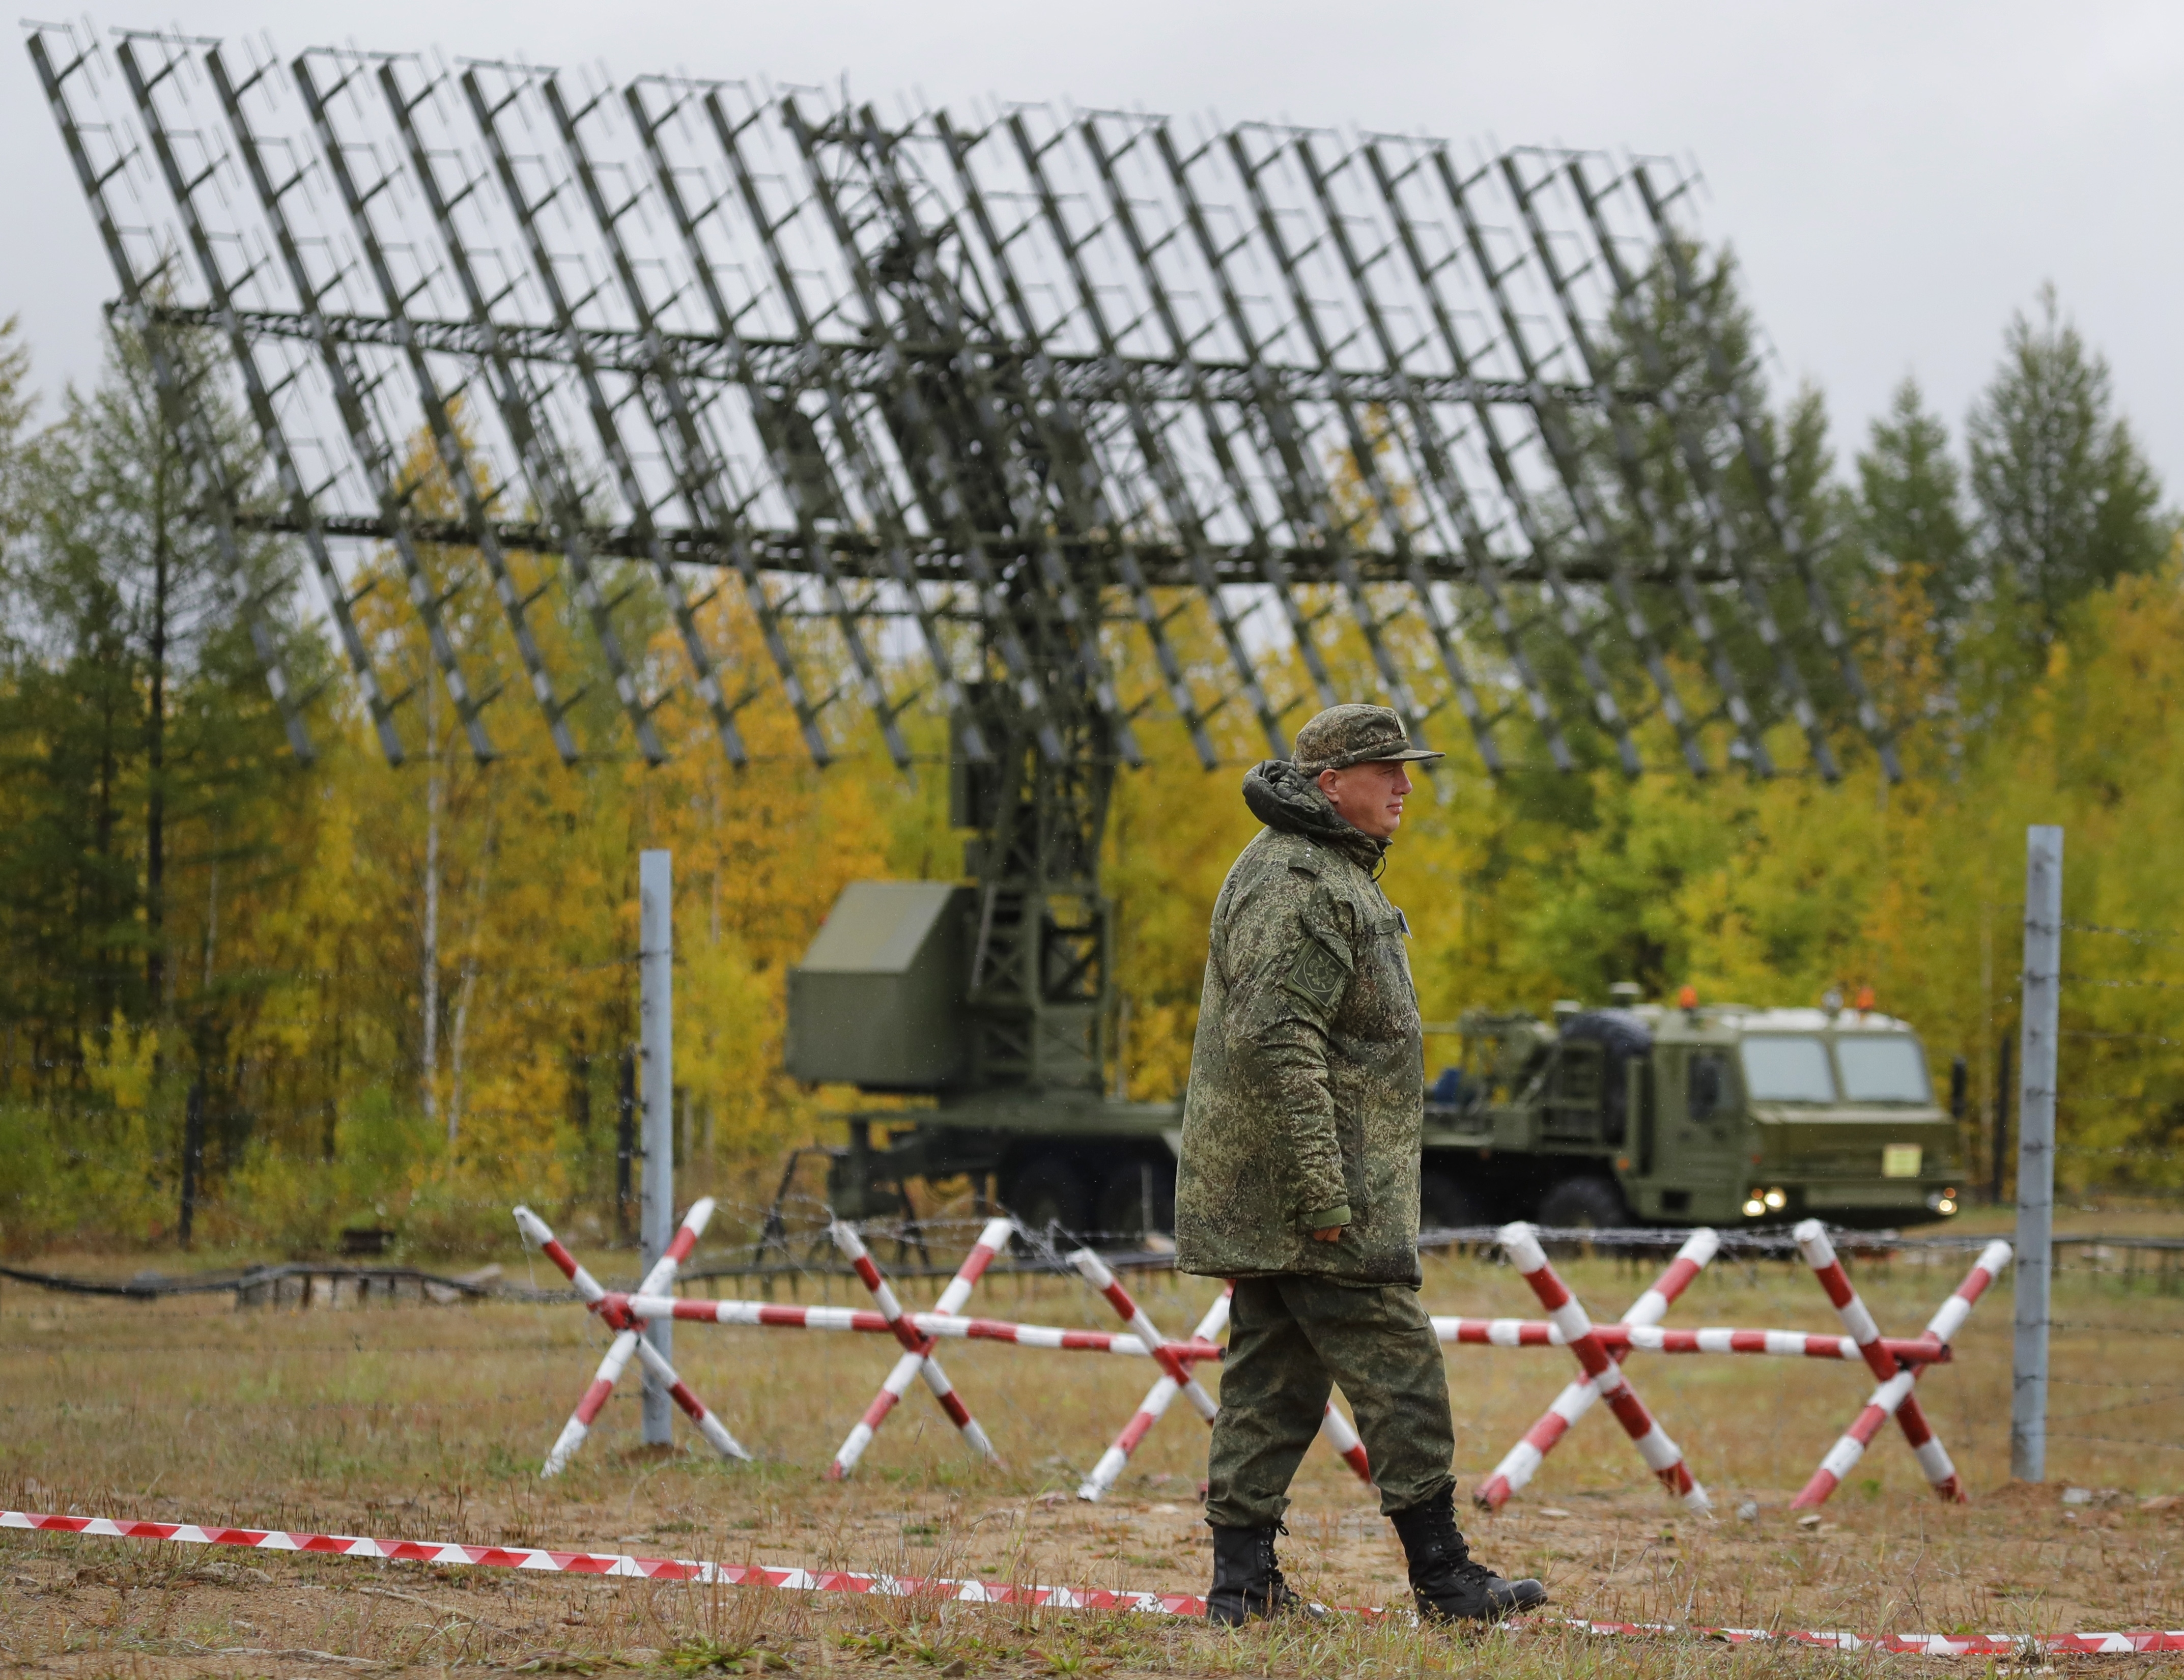 A Russian walks past a Nebo-M radar deployed in a forest, during a military exercises on training ground